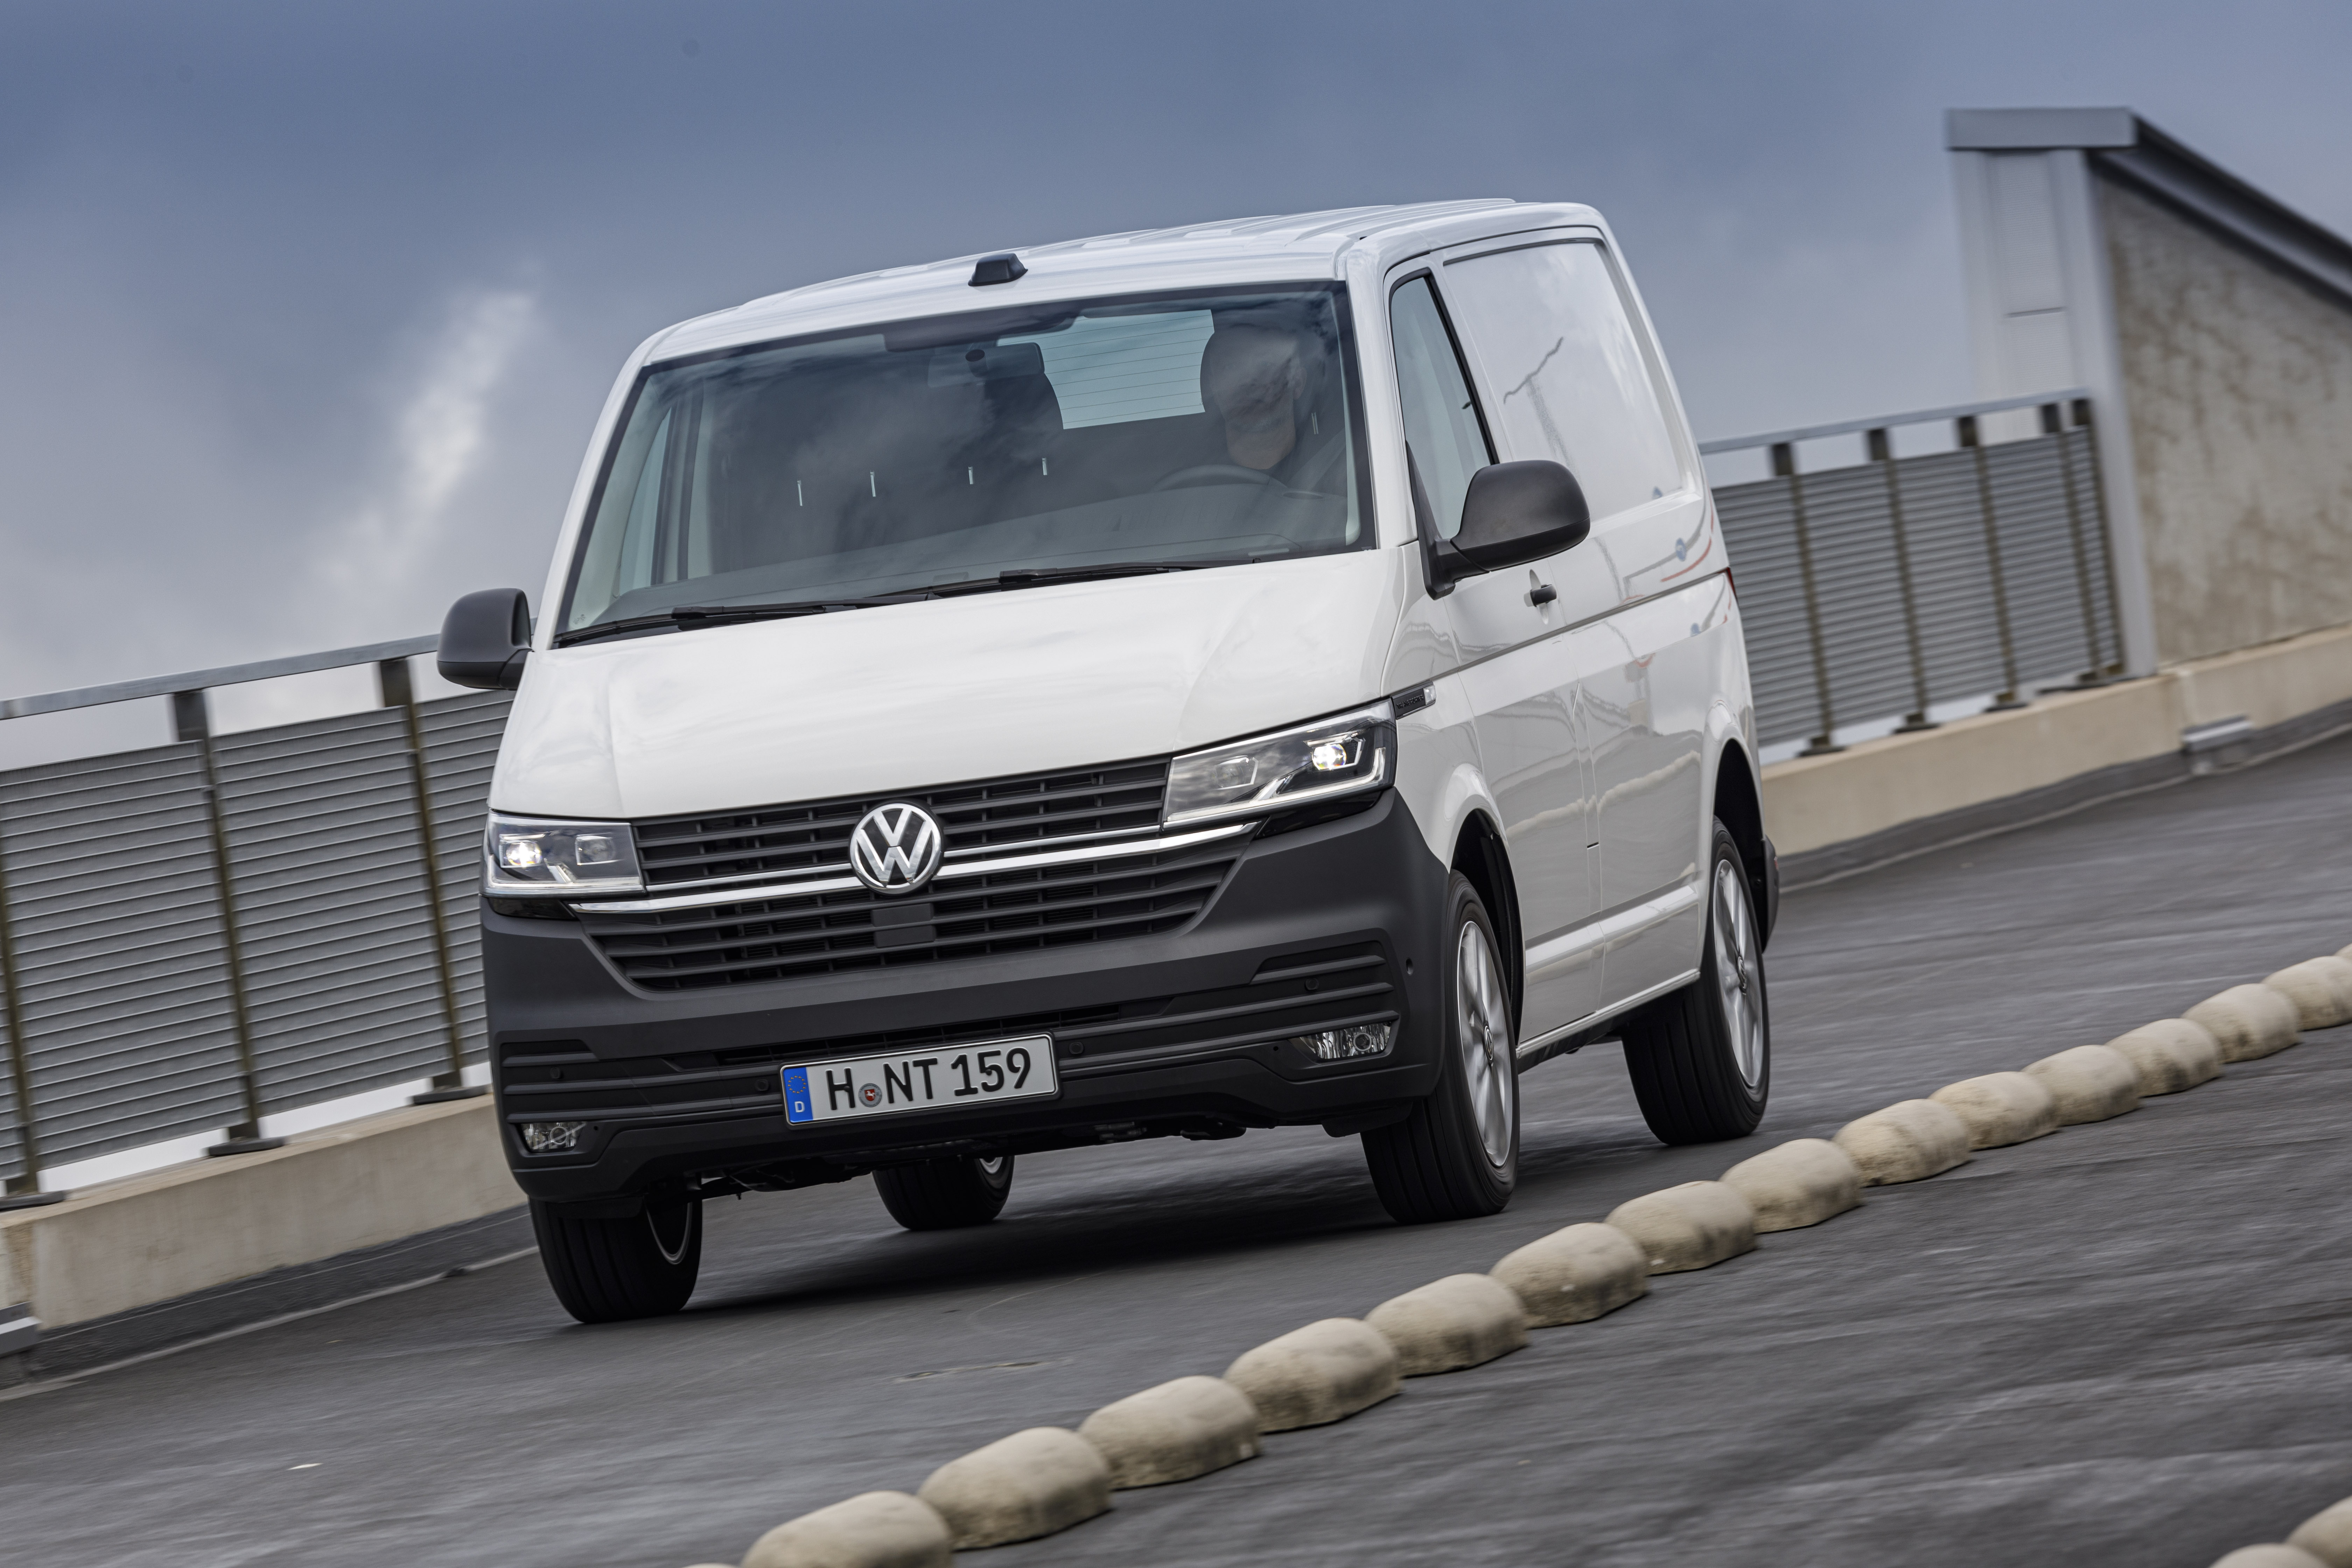 The Transporter is one of the most popular vans in the UK